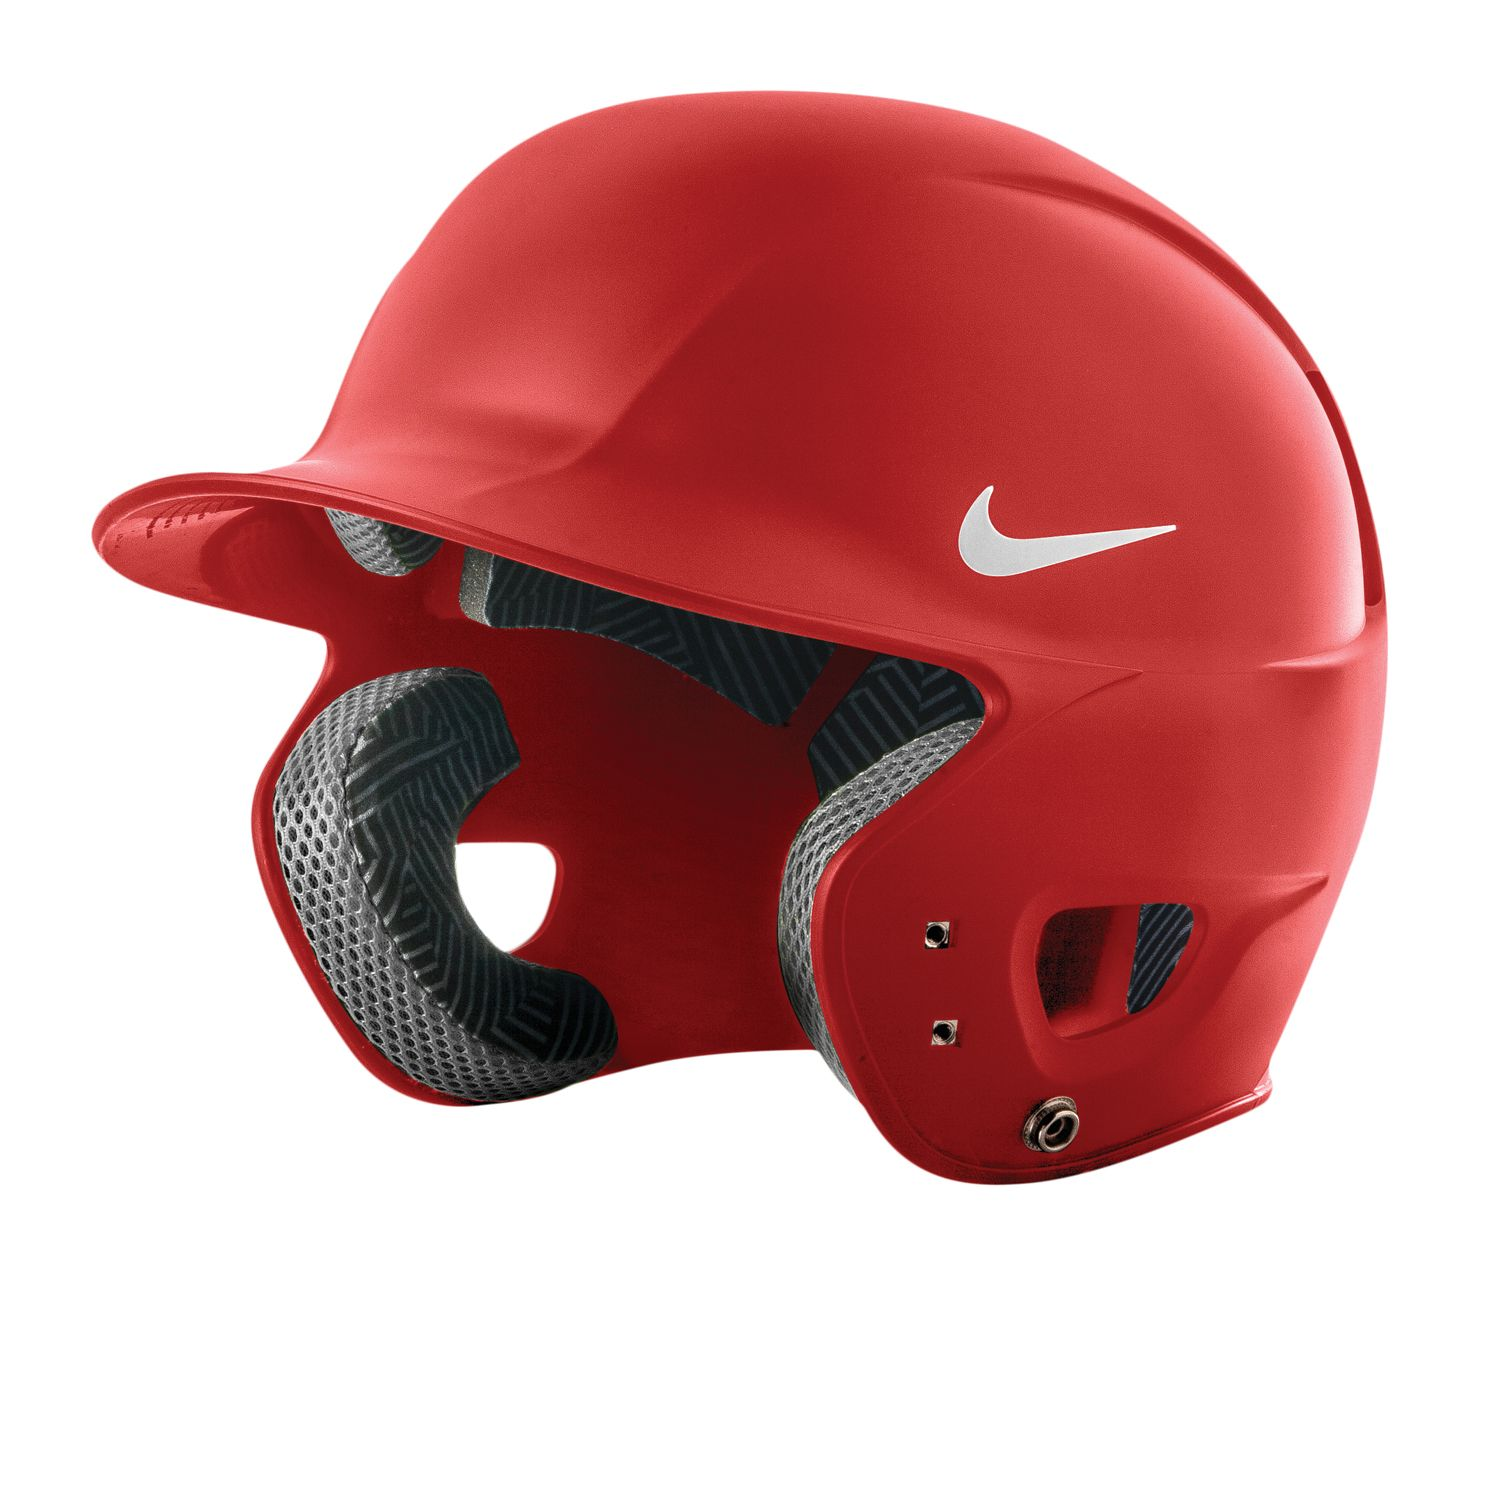 Nike Breakout Baseball Batting Helmet - Adult